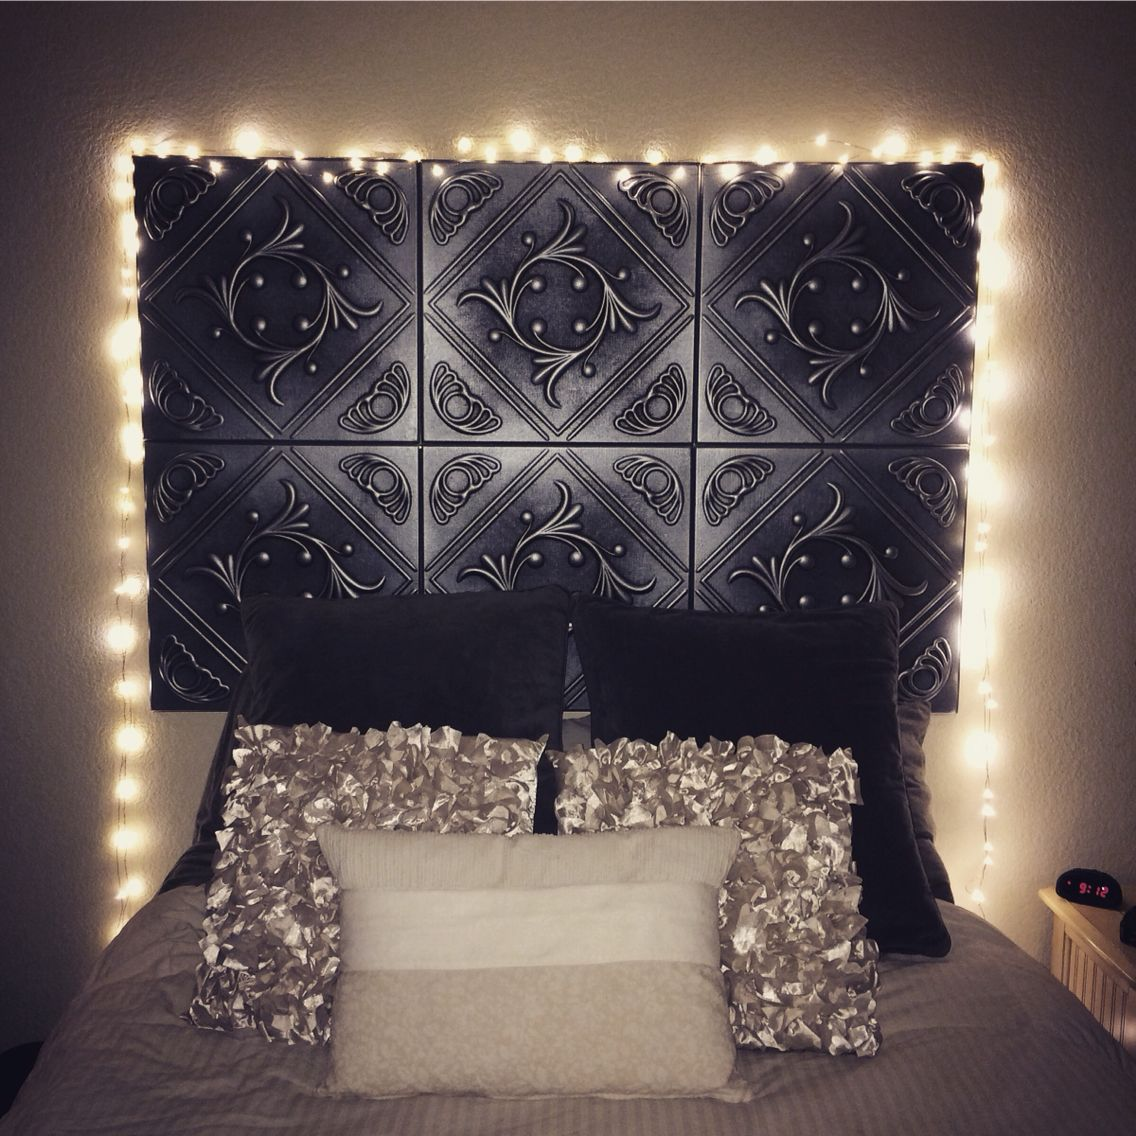 diy headboard with faux tin tiles 20x20inch foam tiles